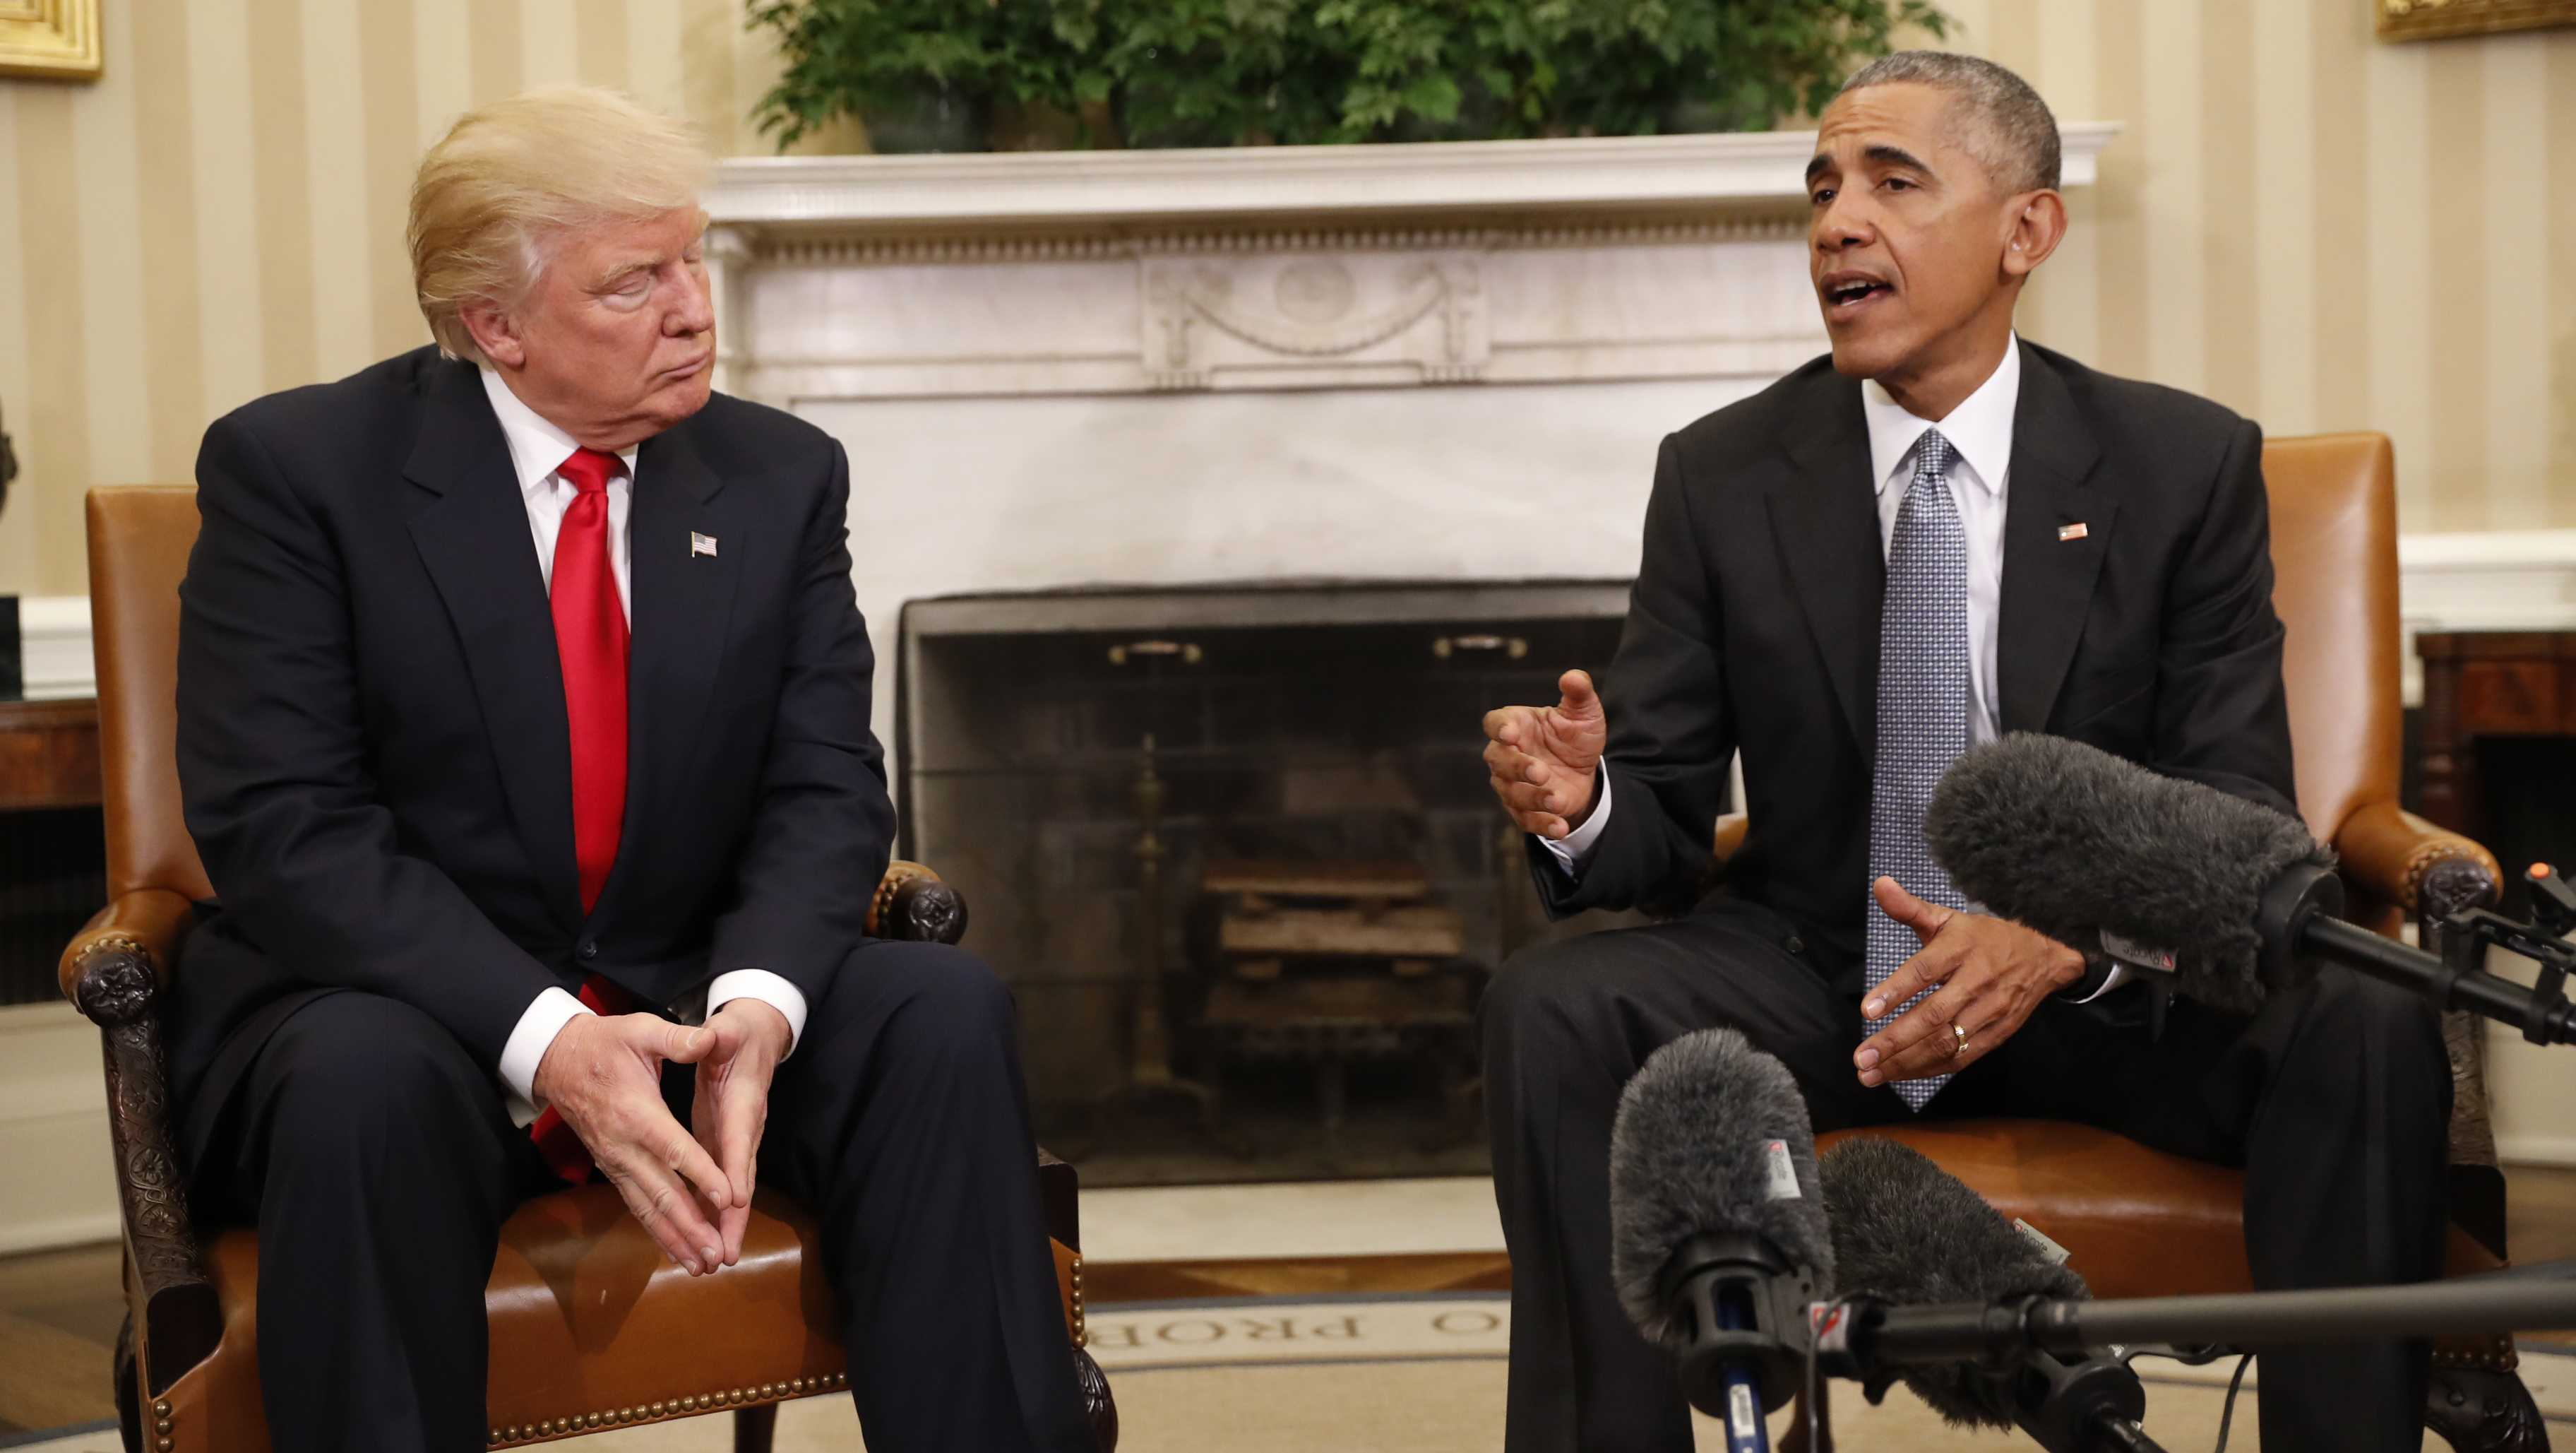 President Barack Obama meets with President-elect Donald Trump in the Oval Office.